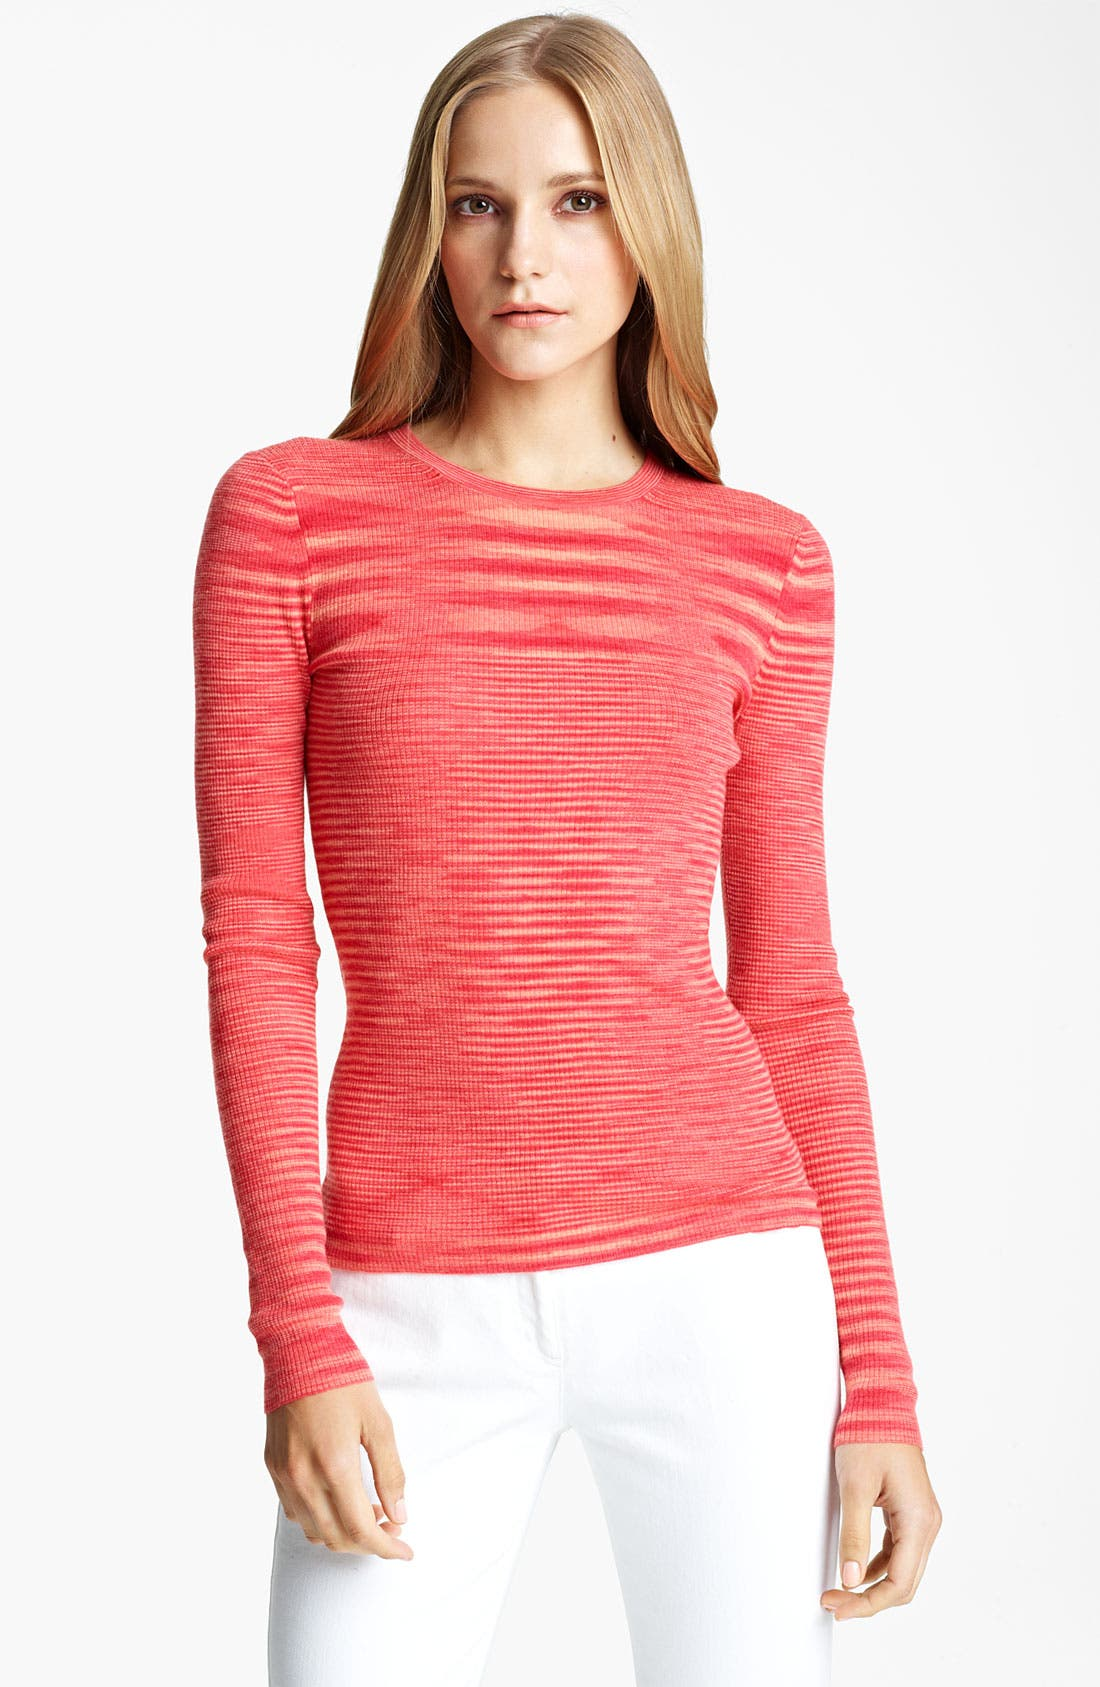 Main Image - Michael Kors Space Dye Cashmere Sweater